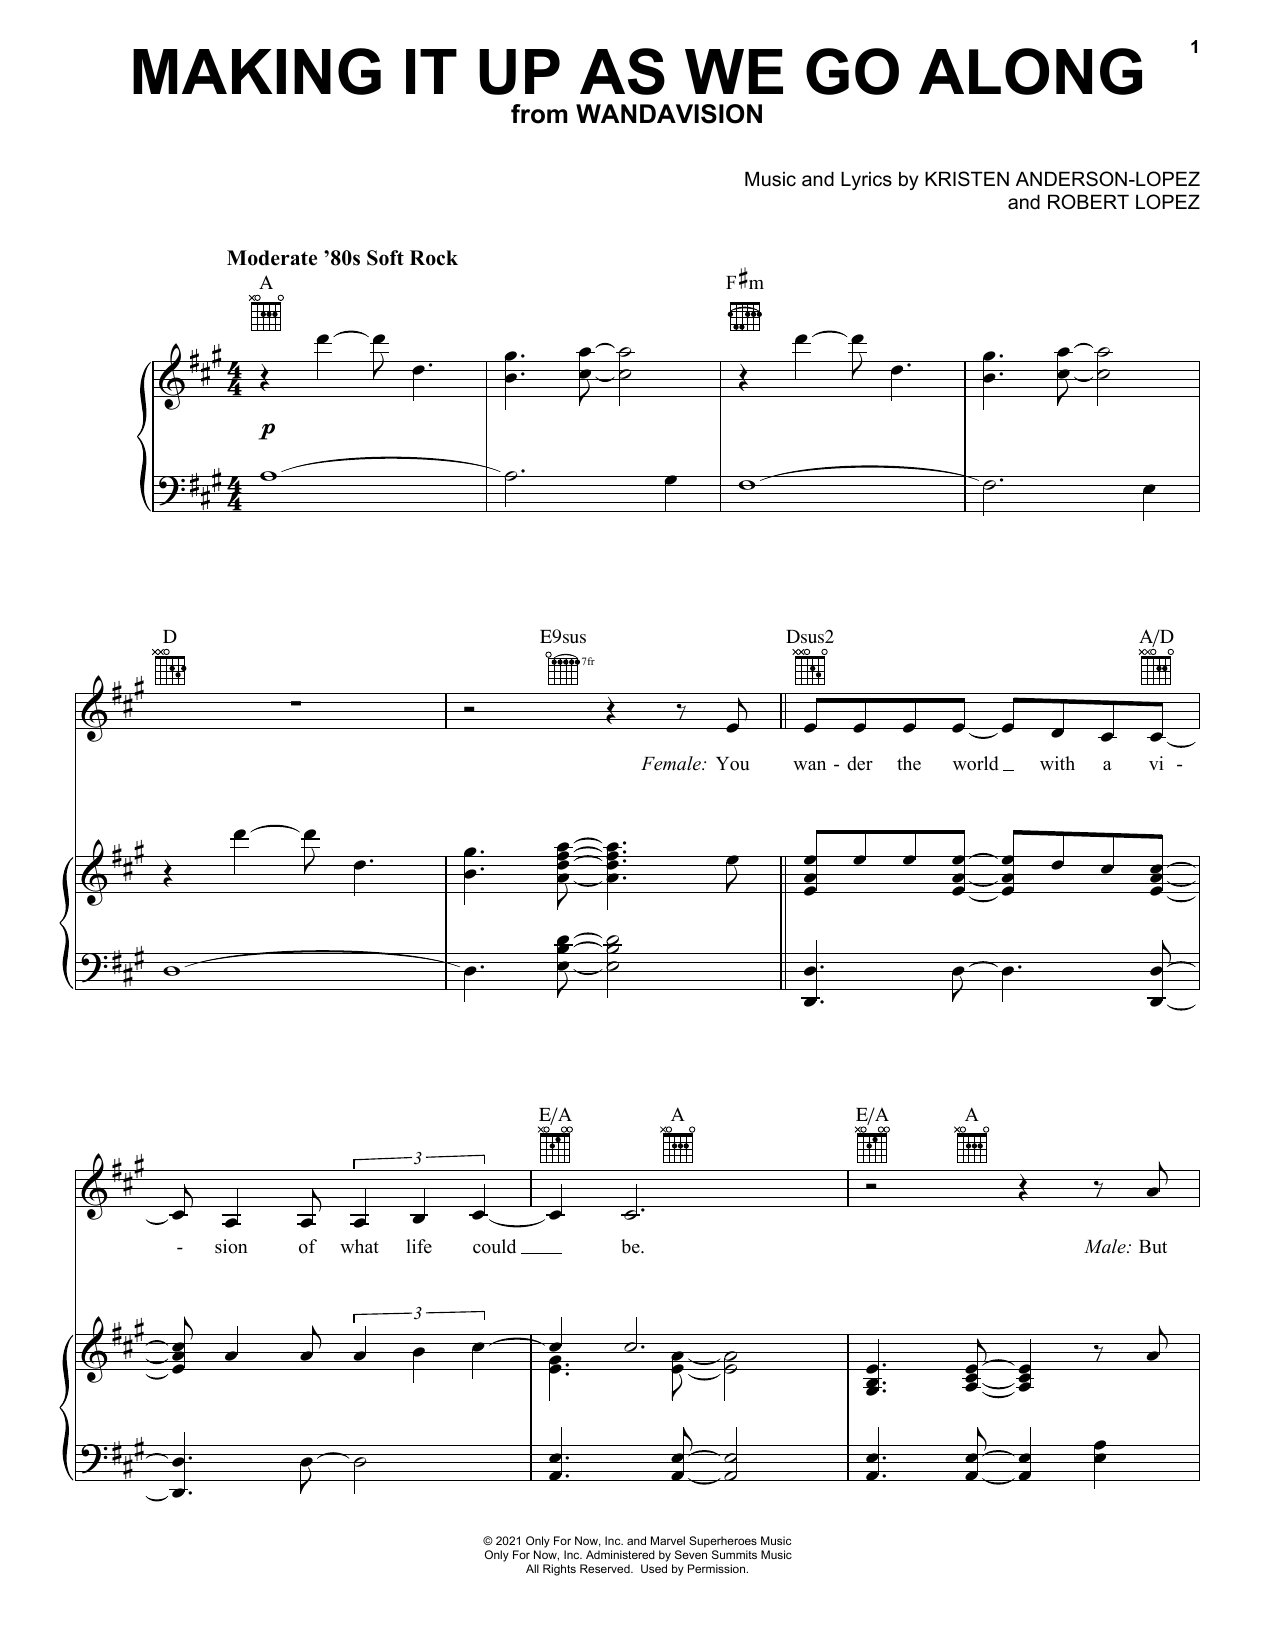 Kristen Anderson-Lopez & Robert Lopez Making It Up As We Go Along (from WandaVision) sheet music notes printable PDF score